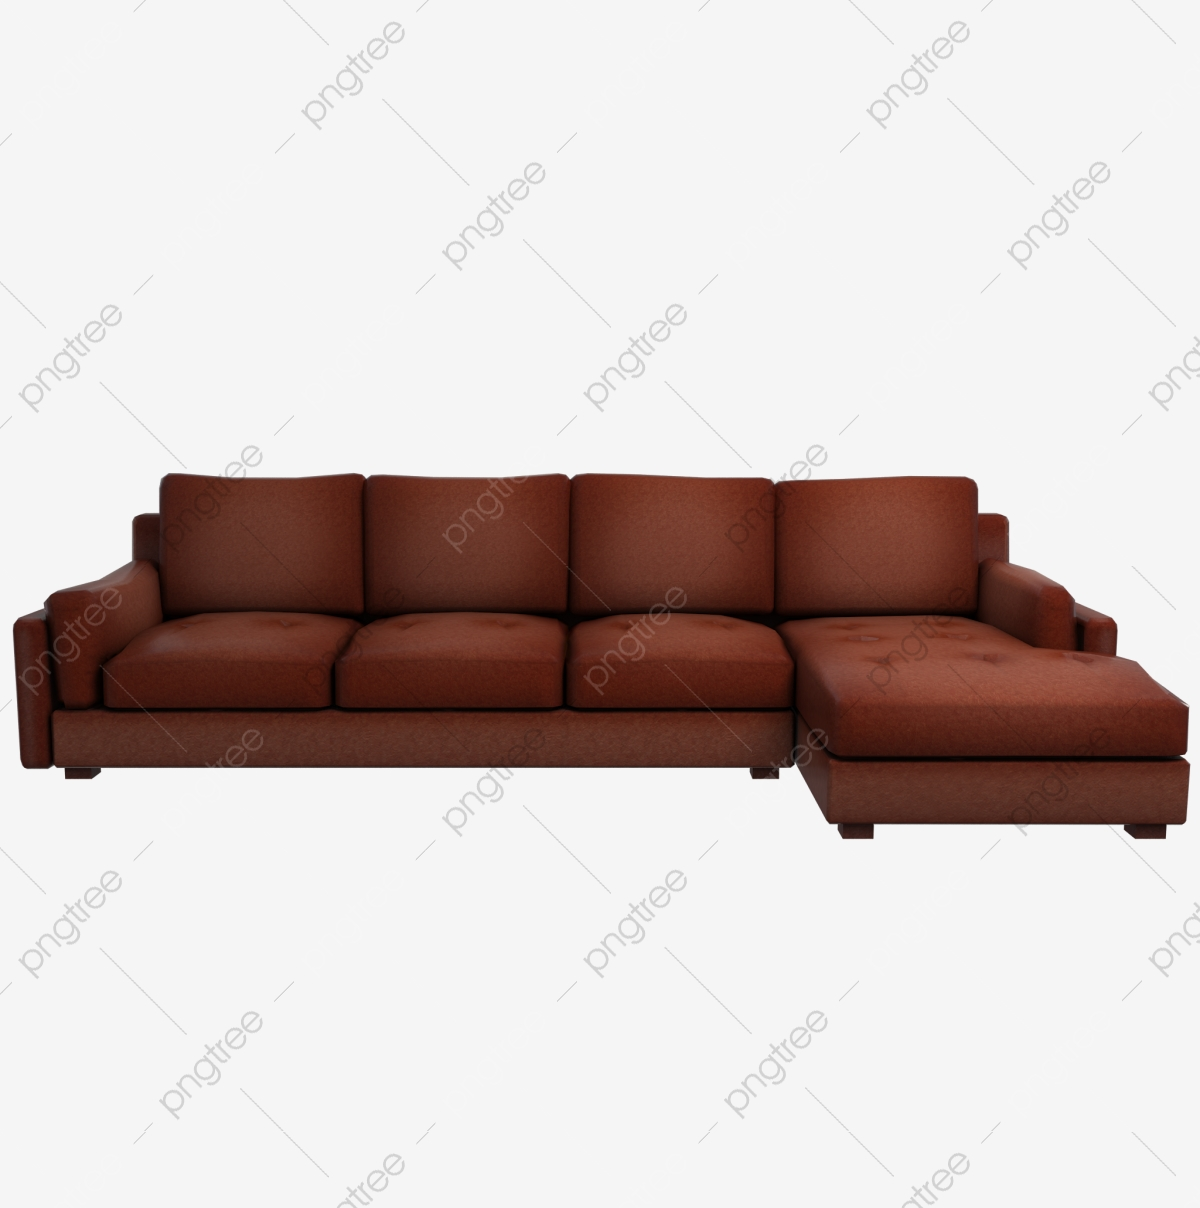 Prime Leather Sofa Sectional Sofa Front Furniture Solid Wood Inzonedesignstudio Interior Chair Design Inzonedesignstudiocom